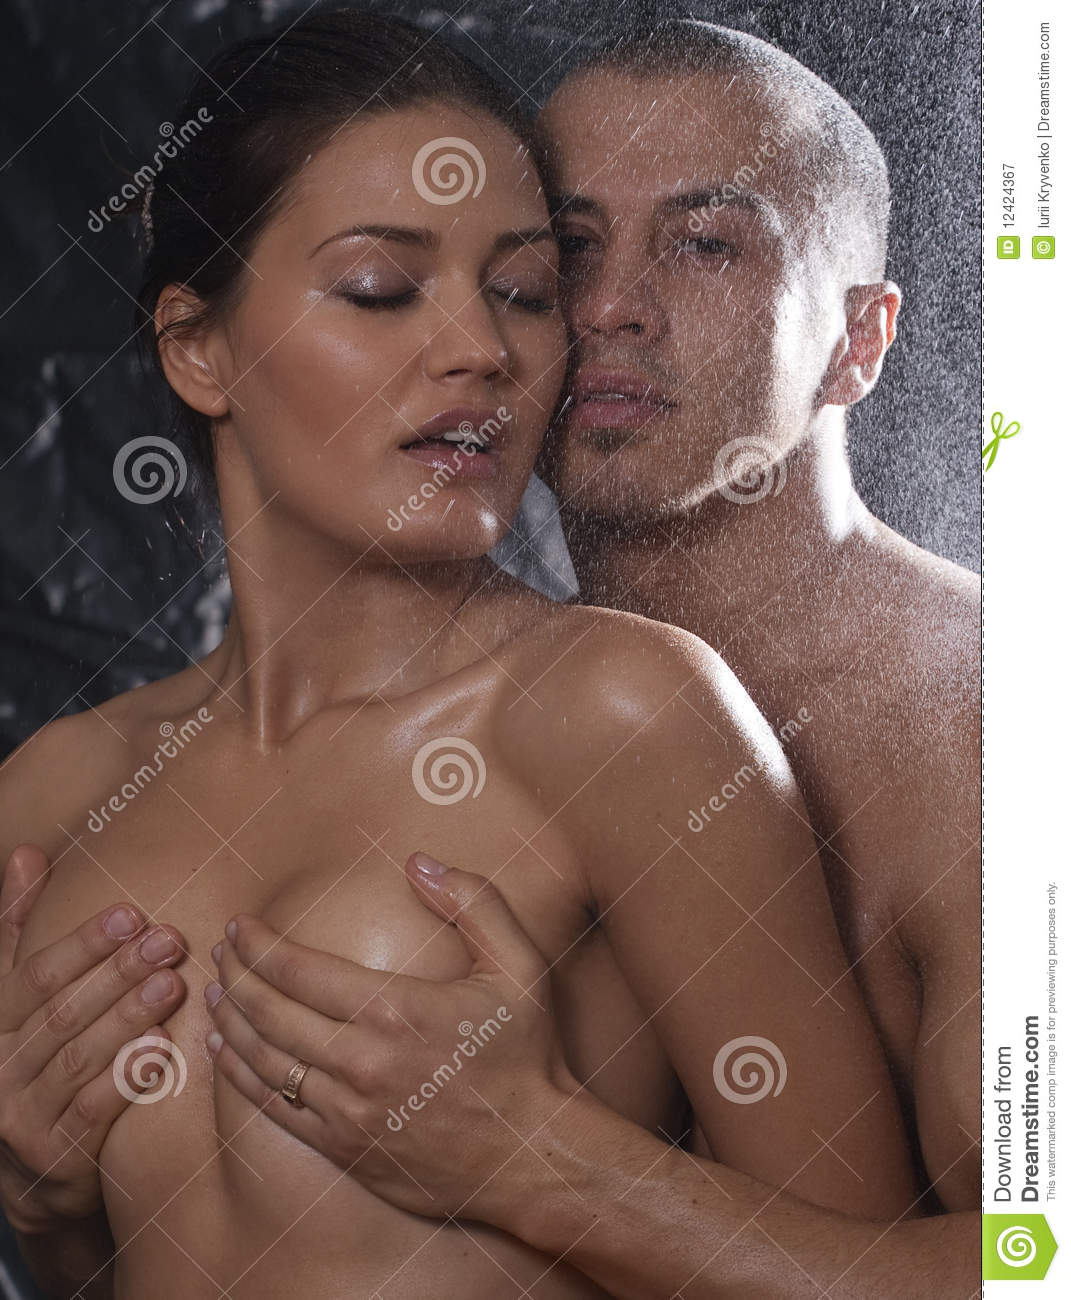 Man holding boobs